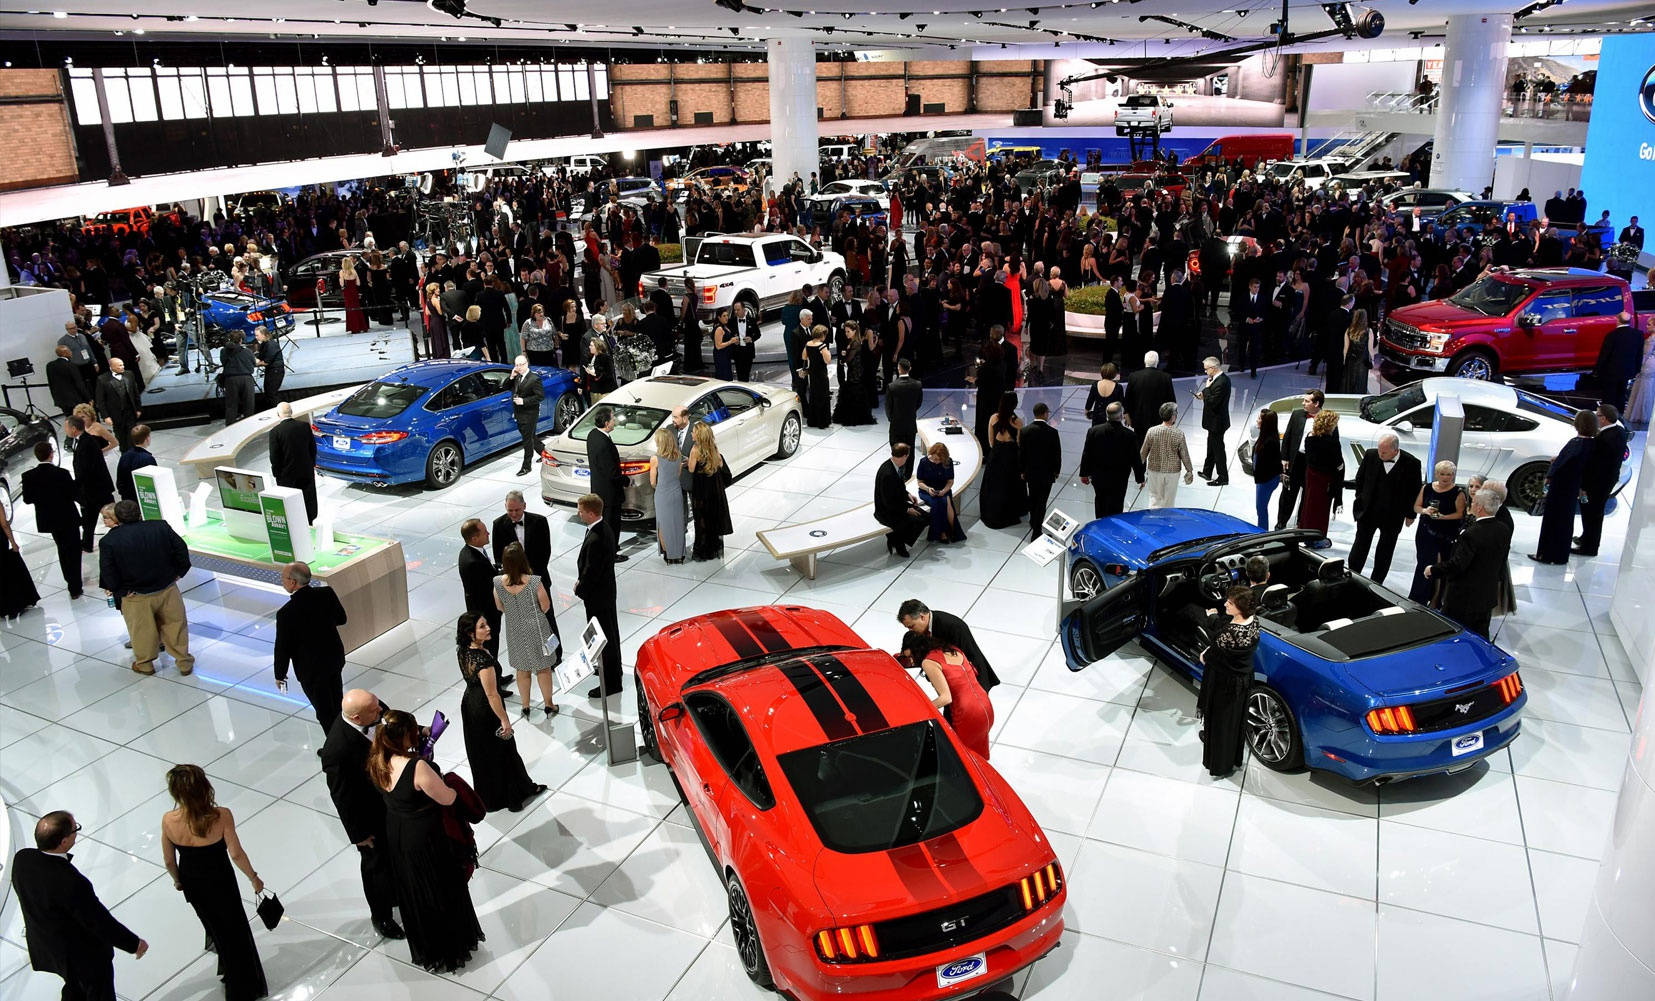 AUTO EXPO - SHOWCASING MOBILITY OF THE FUTURE